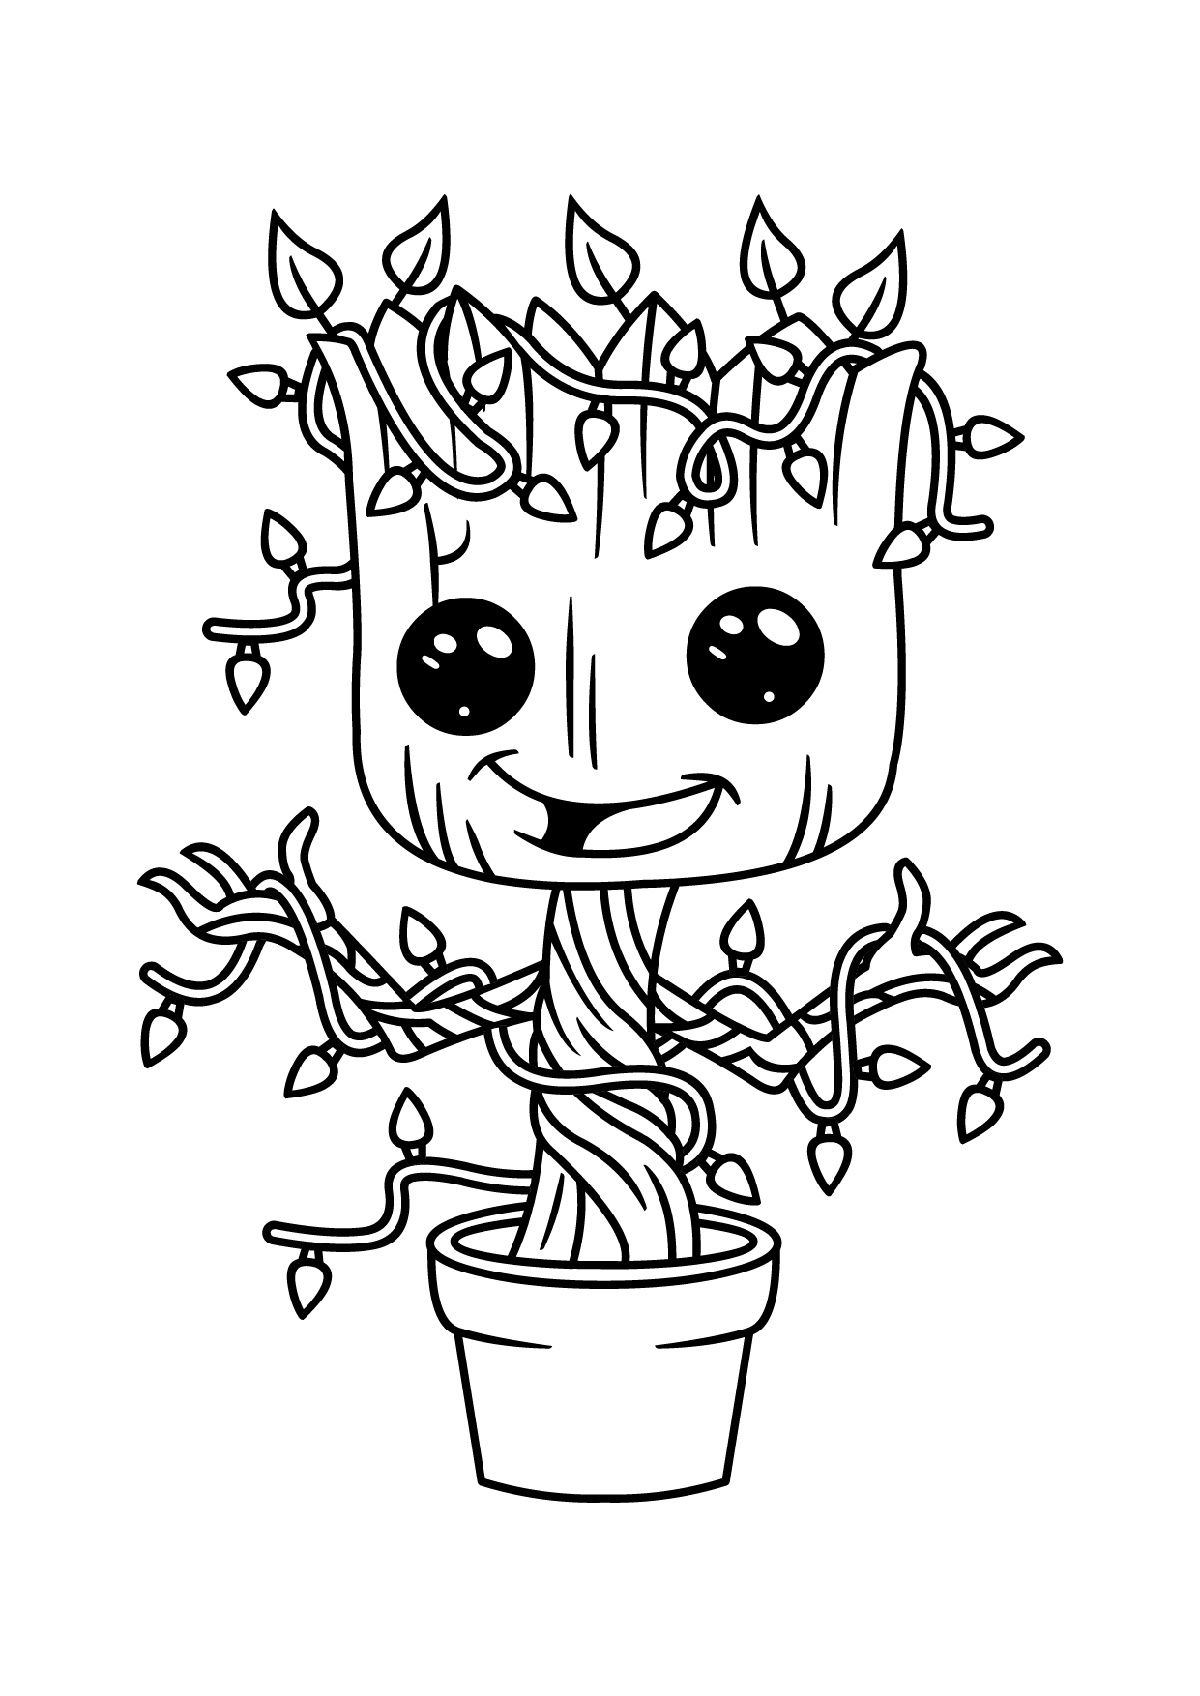 Baby Groot Coloring Page Avengers coloring pages